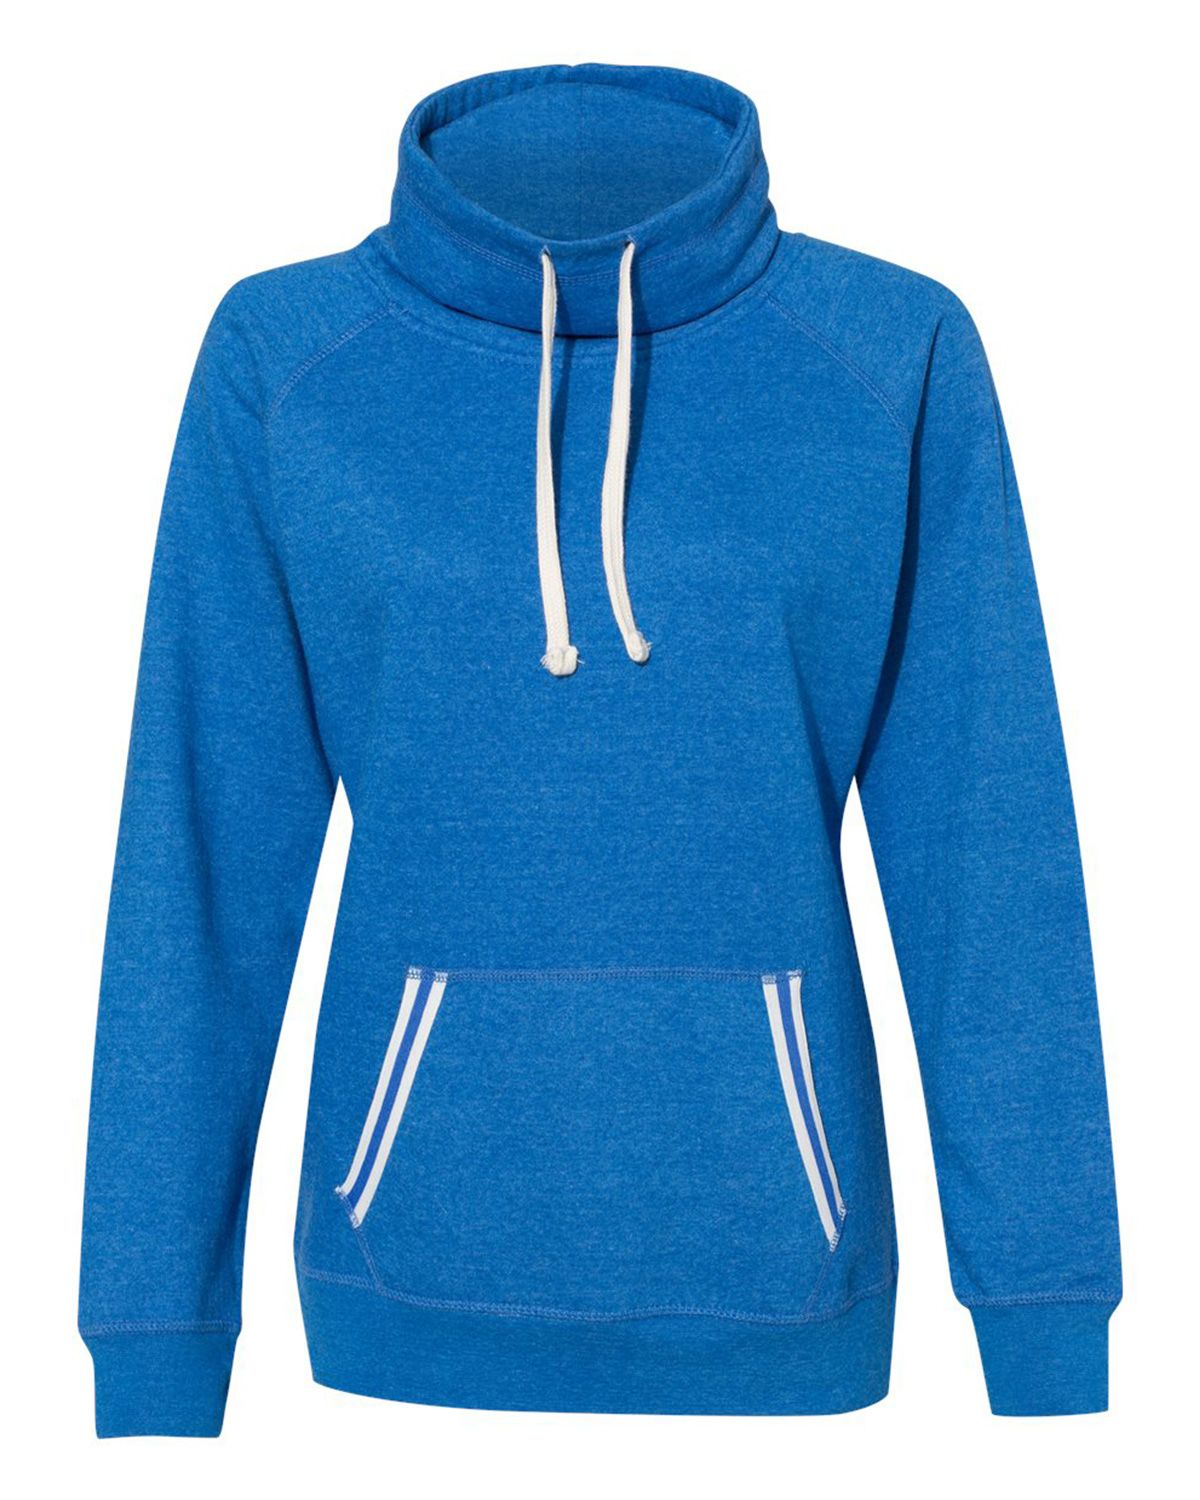 J America 8653 Women's Relay Cowl-Neck Sweatshirt - Royal - S from J America